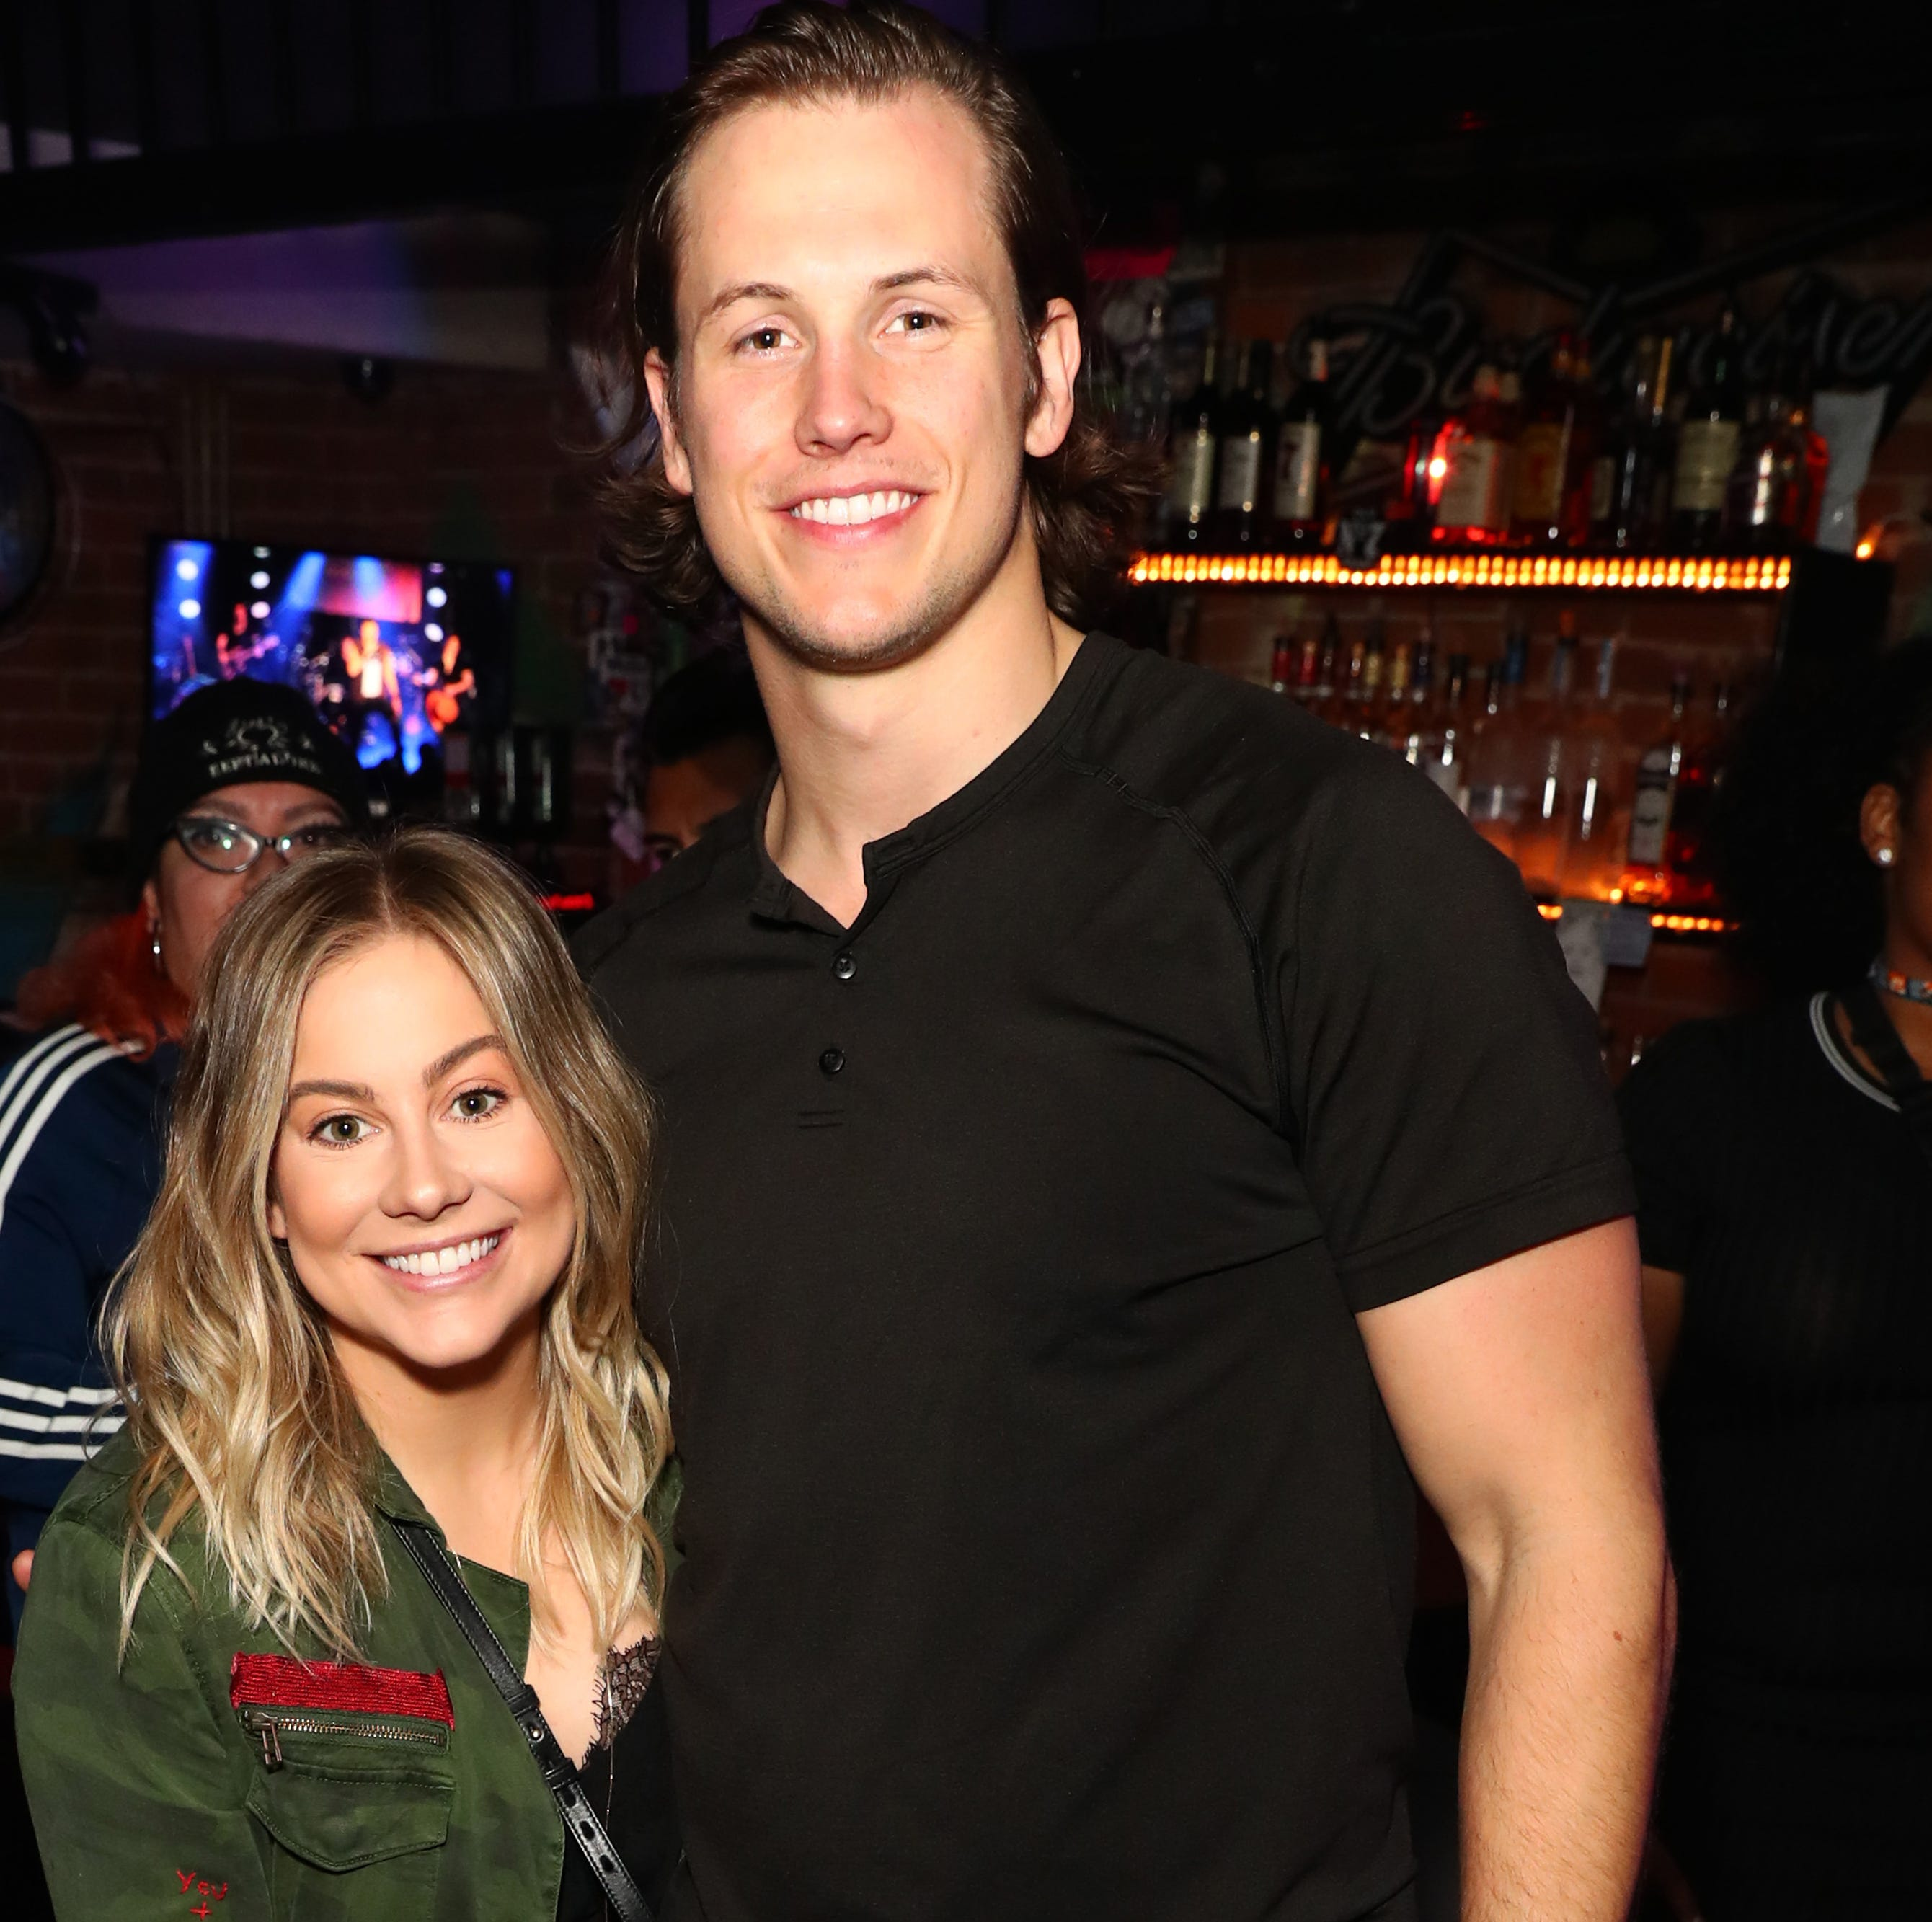 Shawn Johnson and Andrew East attend Bohemian Rhapsody's Get Loud Extravaganza at Whiskey a Go Go on February 12, 2019 in Los Angeles, California.